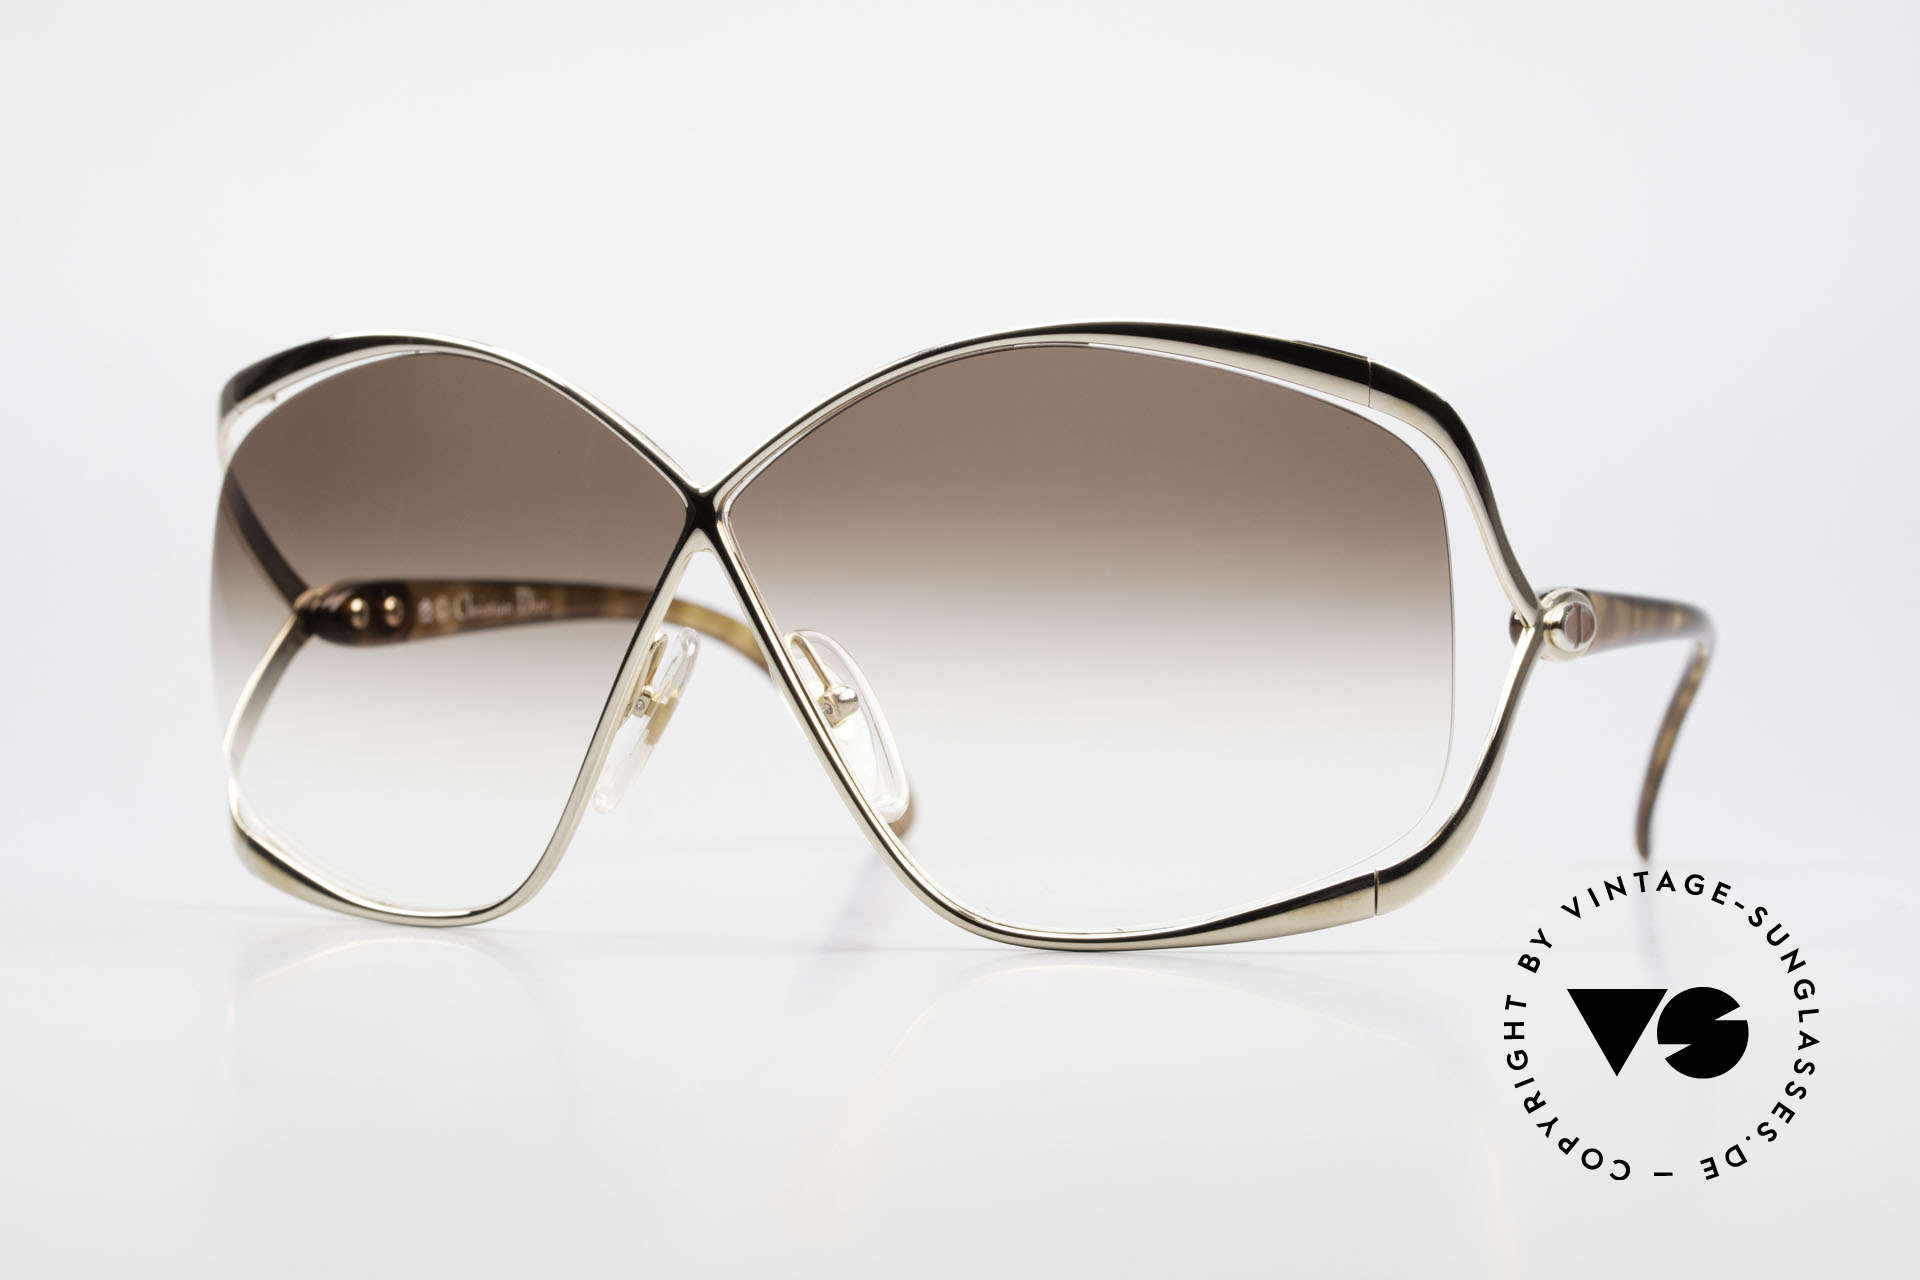 Christian Dior 2056 80's Butterfly Sunglasses, glamorous designer sunglasses by CHRISTIAN DIOR, Made for Women